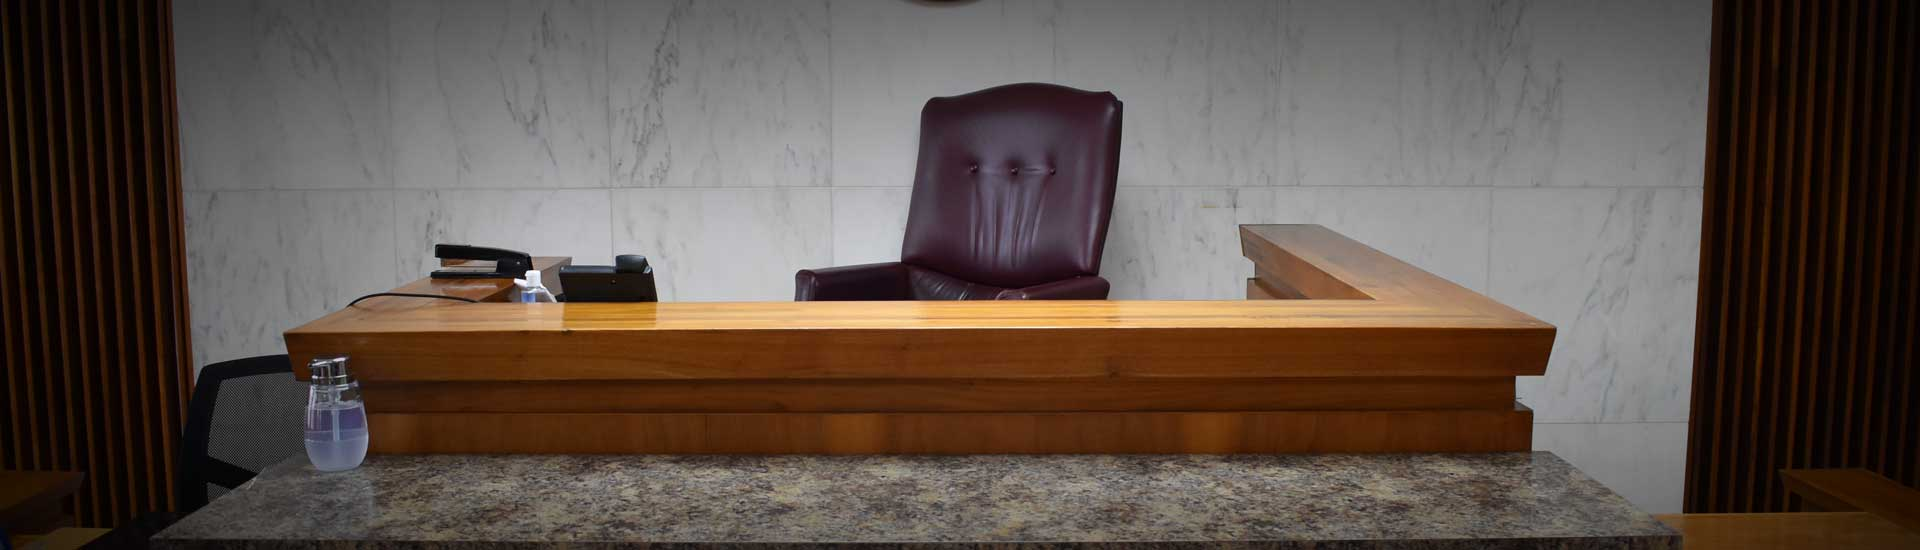 Cullman County Distric Courtroom Bench